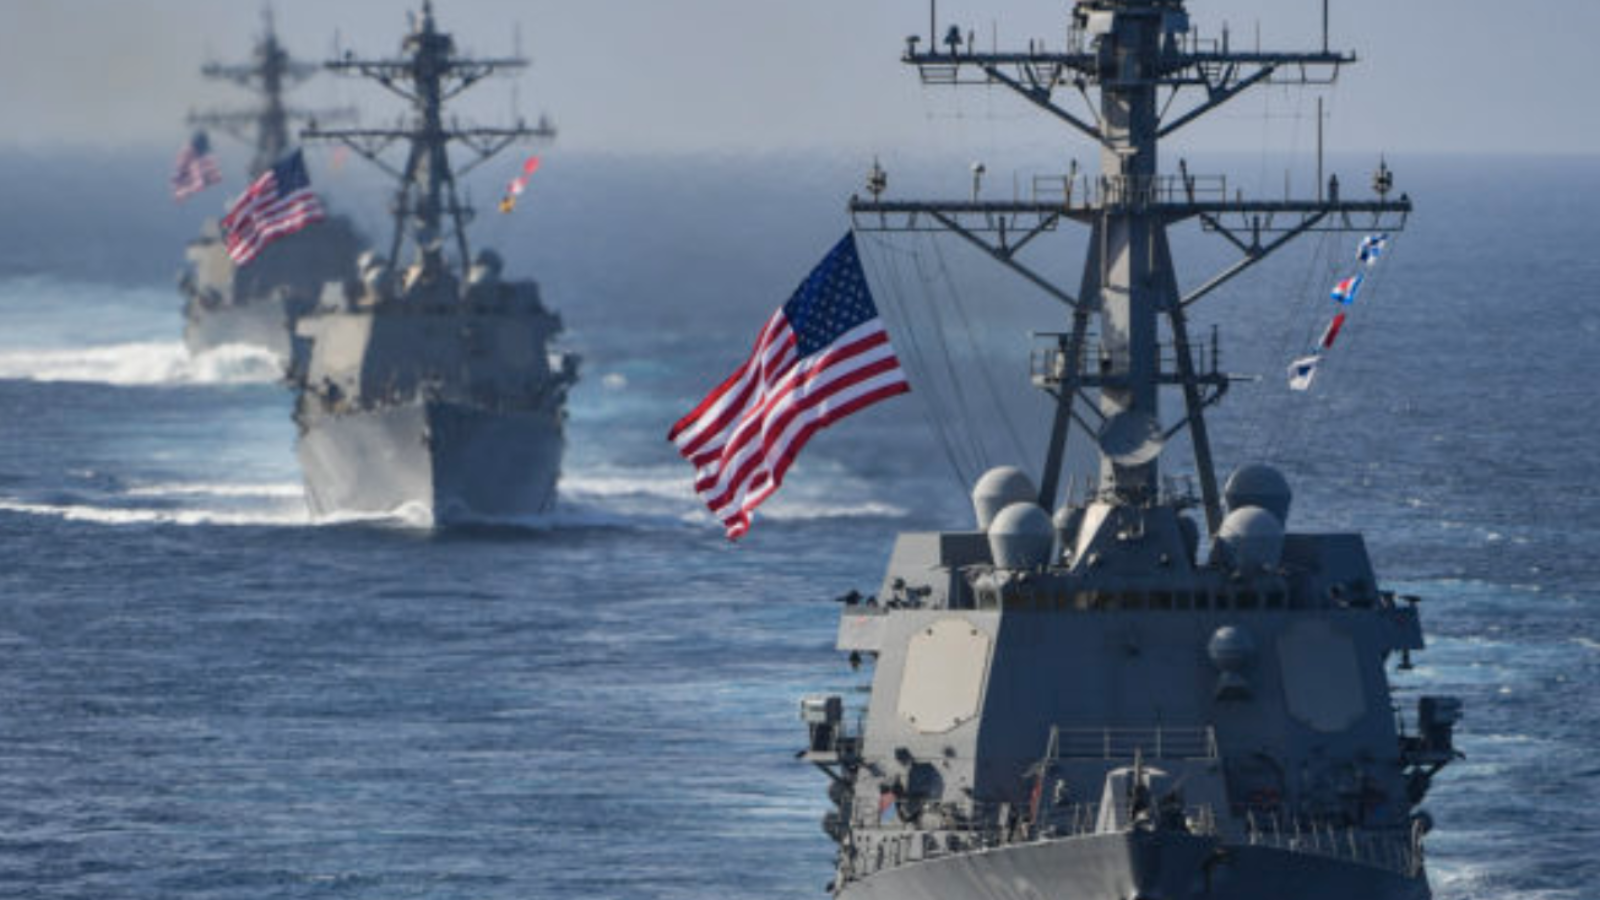 Three Navy destroyers flying American flags at sea